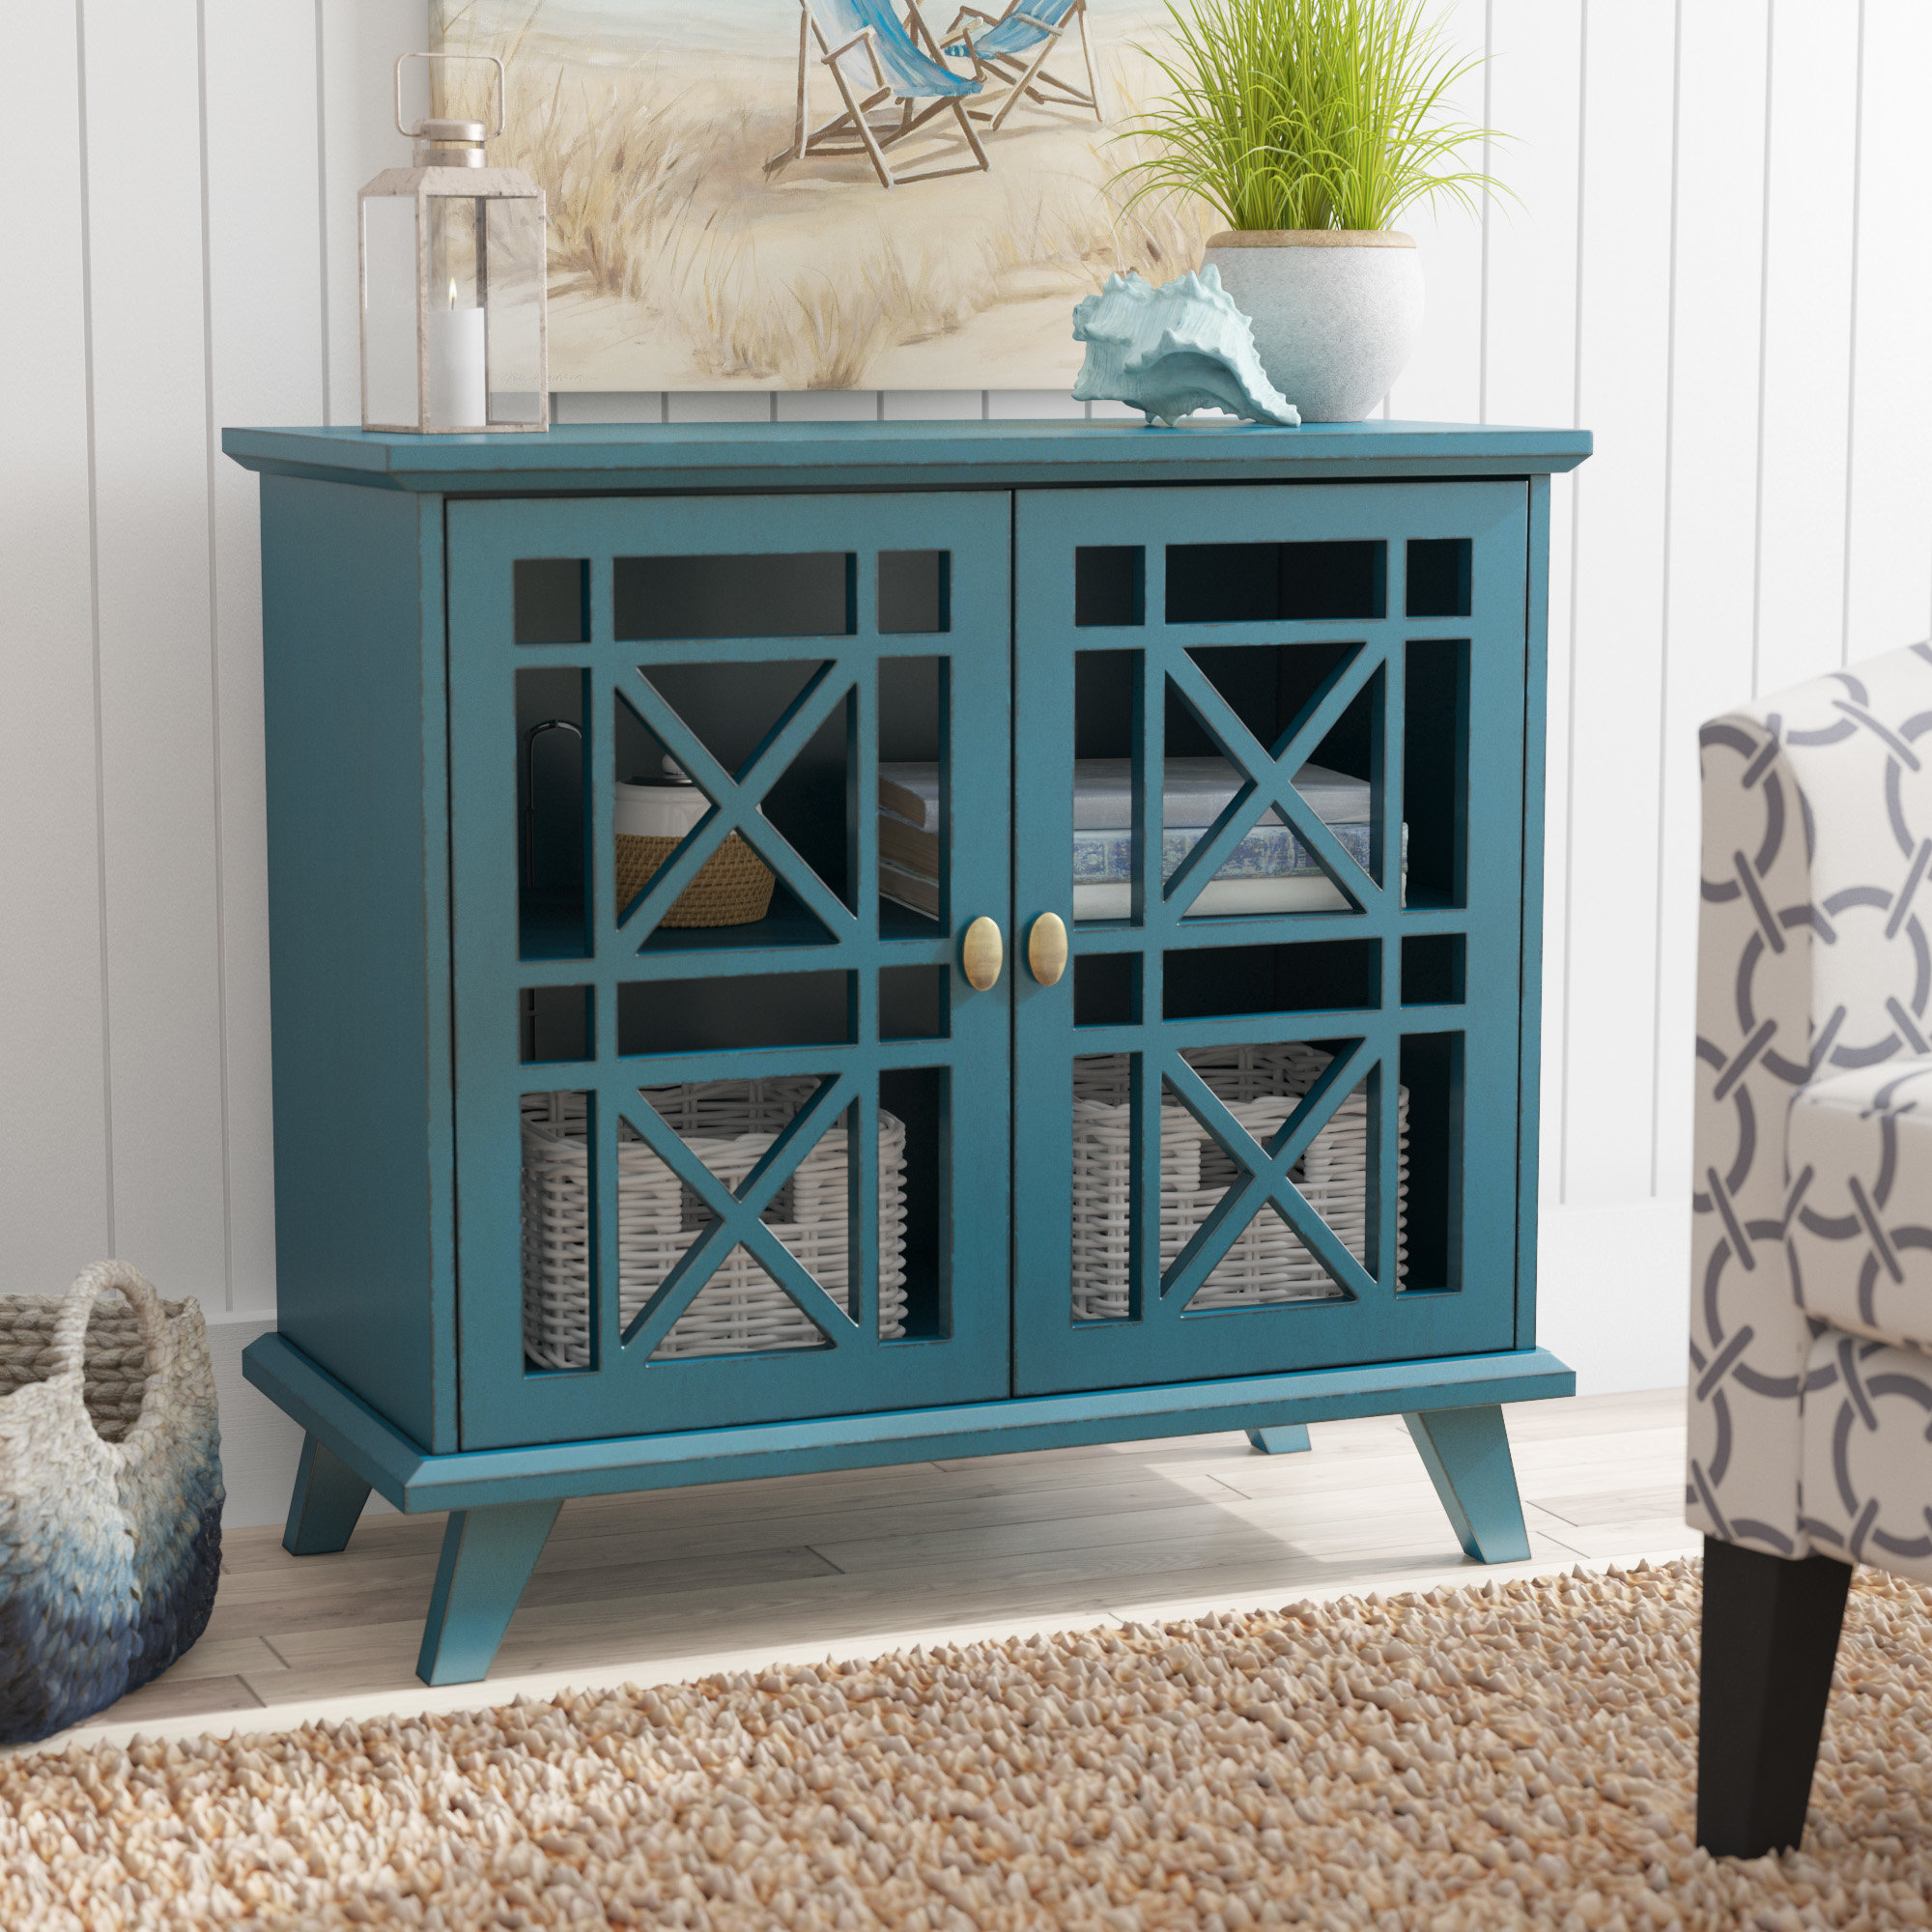 beachcrest home matheus fretwork door accent cabinet reviews table with glass doors goods dressers round metal nightstand black distressed side half moon dale tiffany peacock